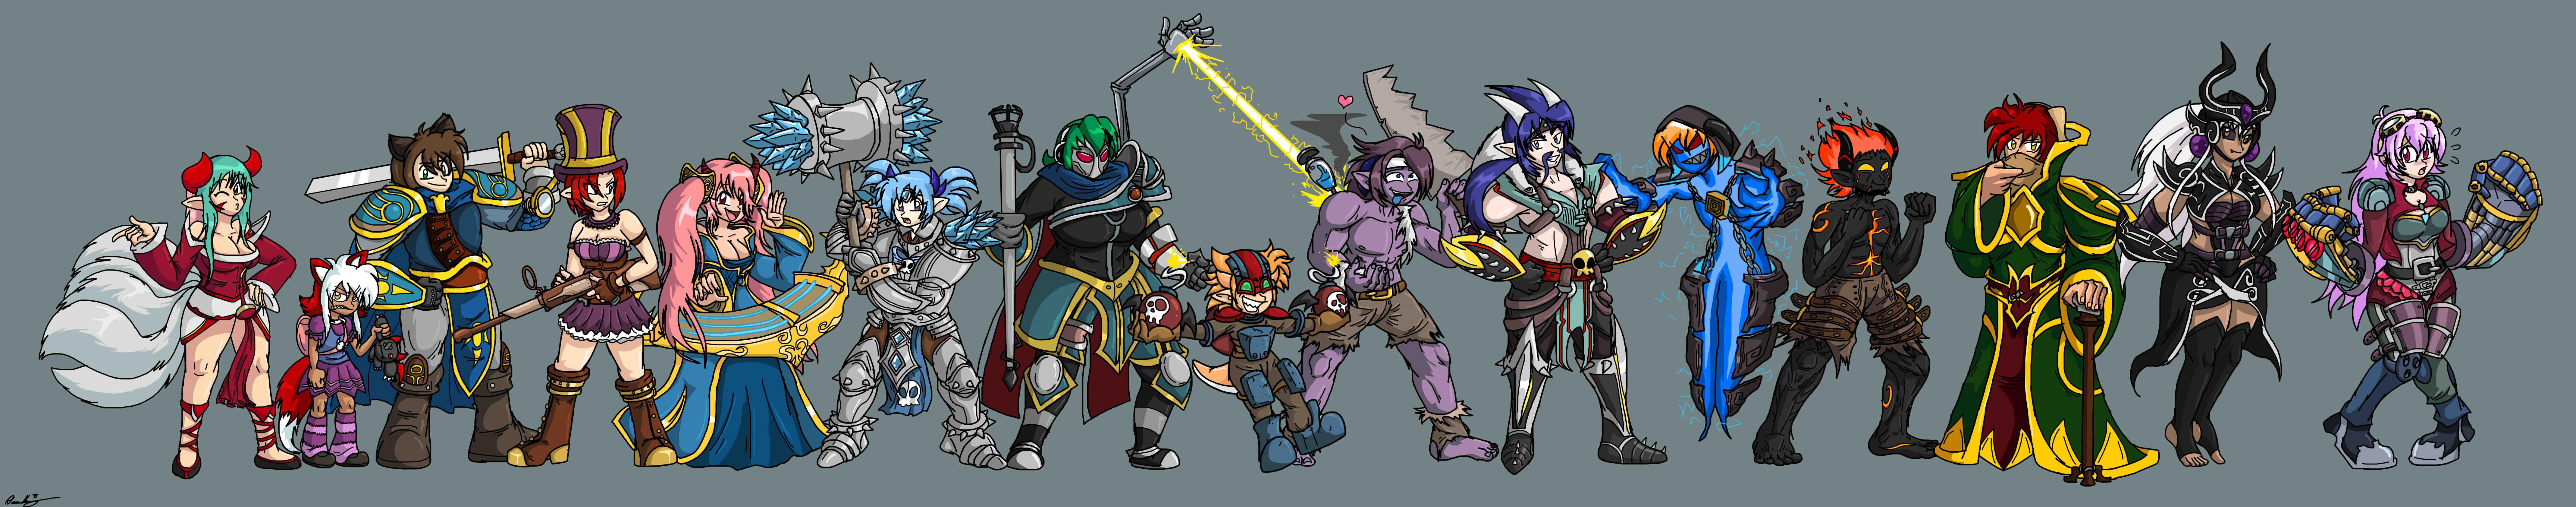 League of Heartcore by SHITFORBRAINSCHAN